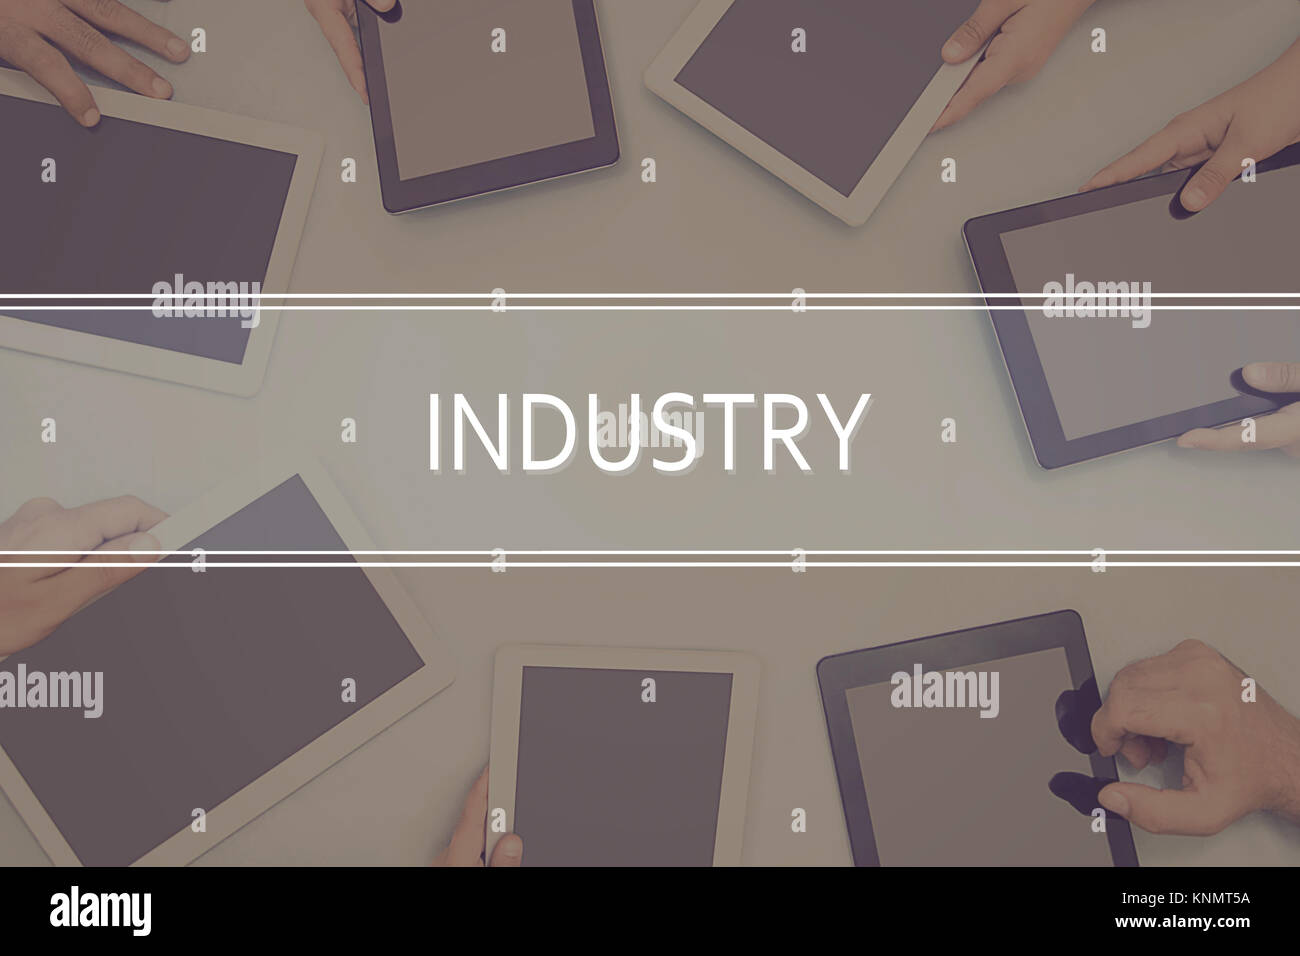 INDUSTRY CONCEPT Business Concept. - Stock Image